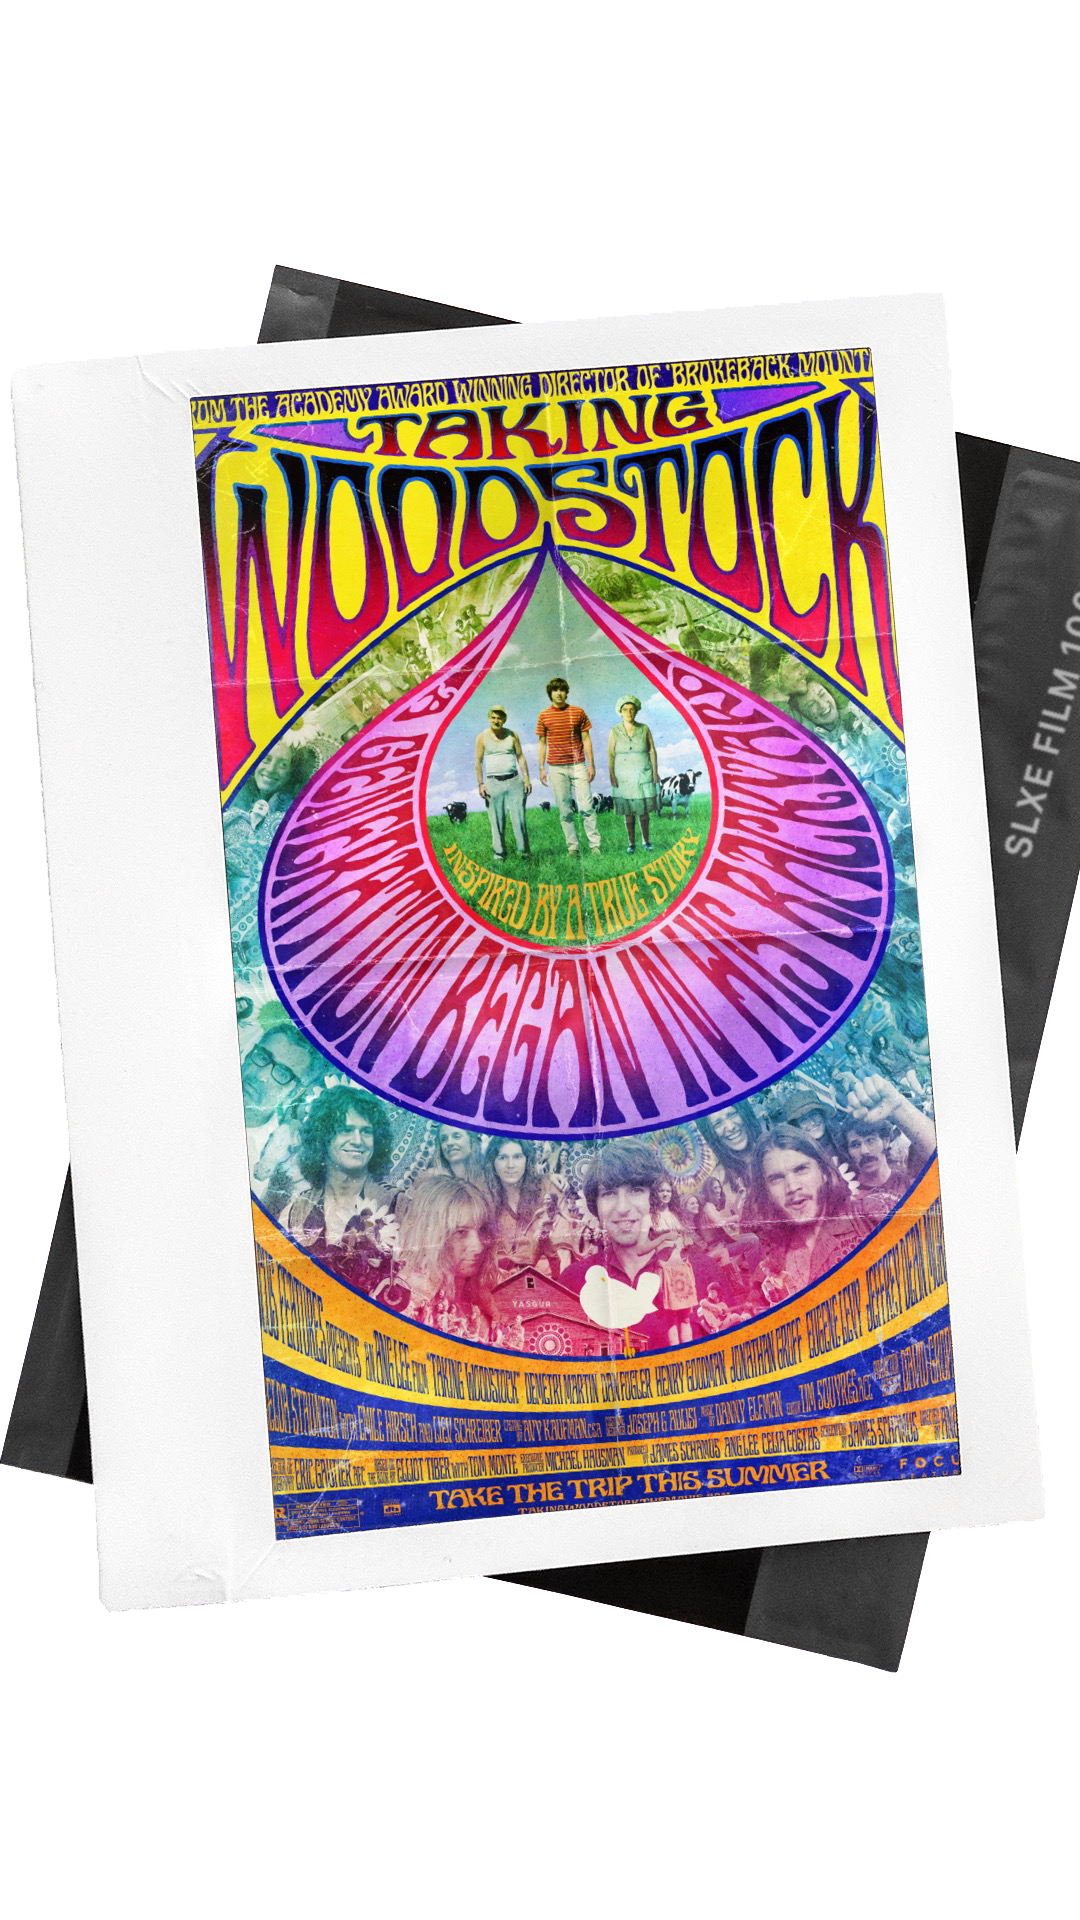 Taking Woodstock (a good story) - We all associate Woodstock with hippies and key artists of the late 60's, however the story behind the festival is not as widely recognised. Taking Woodstock is based on the real story of Elliot Tiber who plays a key role in securing the location for the festival after the initial one falls through. According to many who attended the festival, some scenes from the movie are extremely accurate, for us this is a definite must watch.